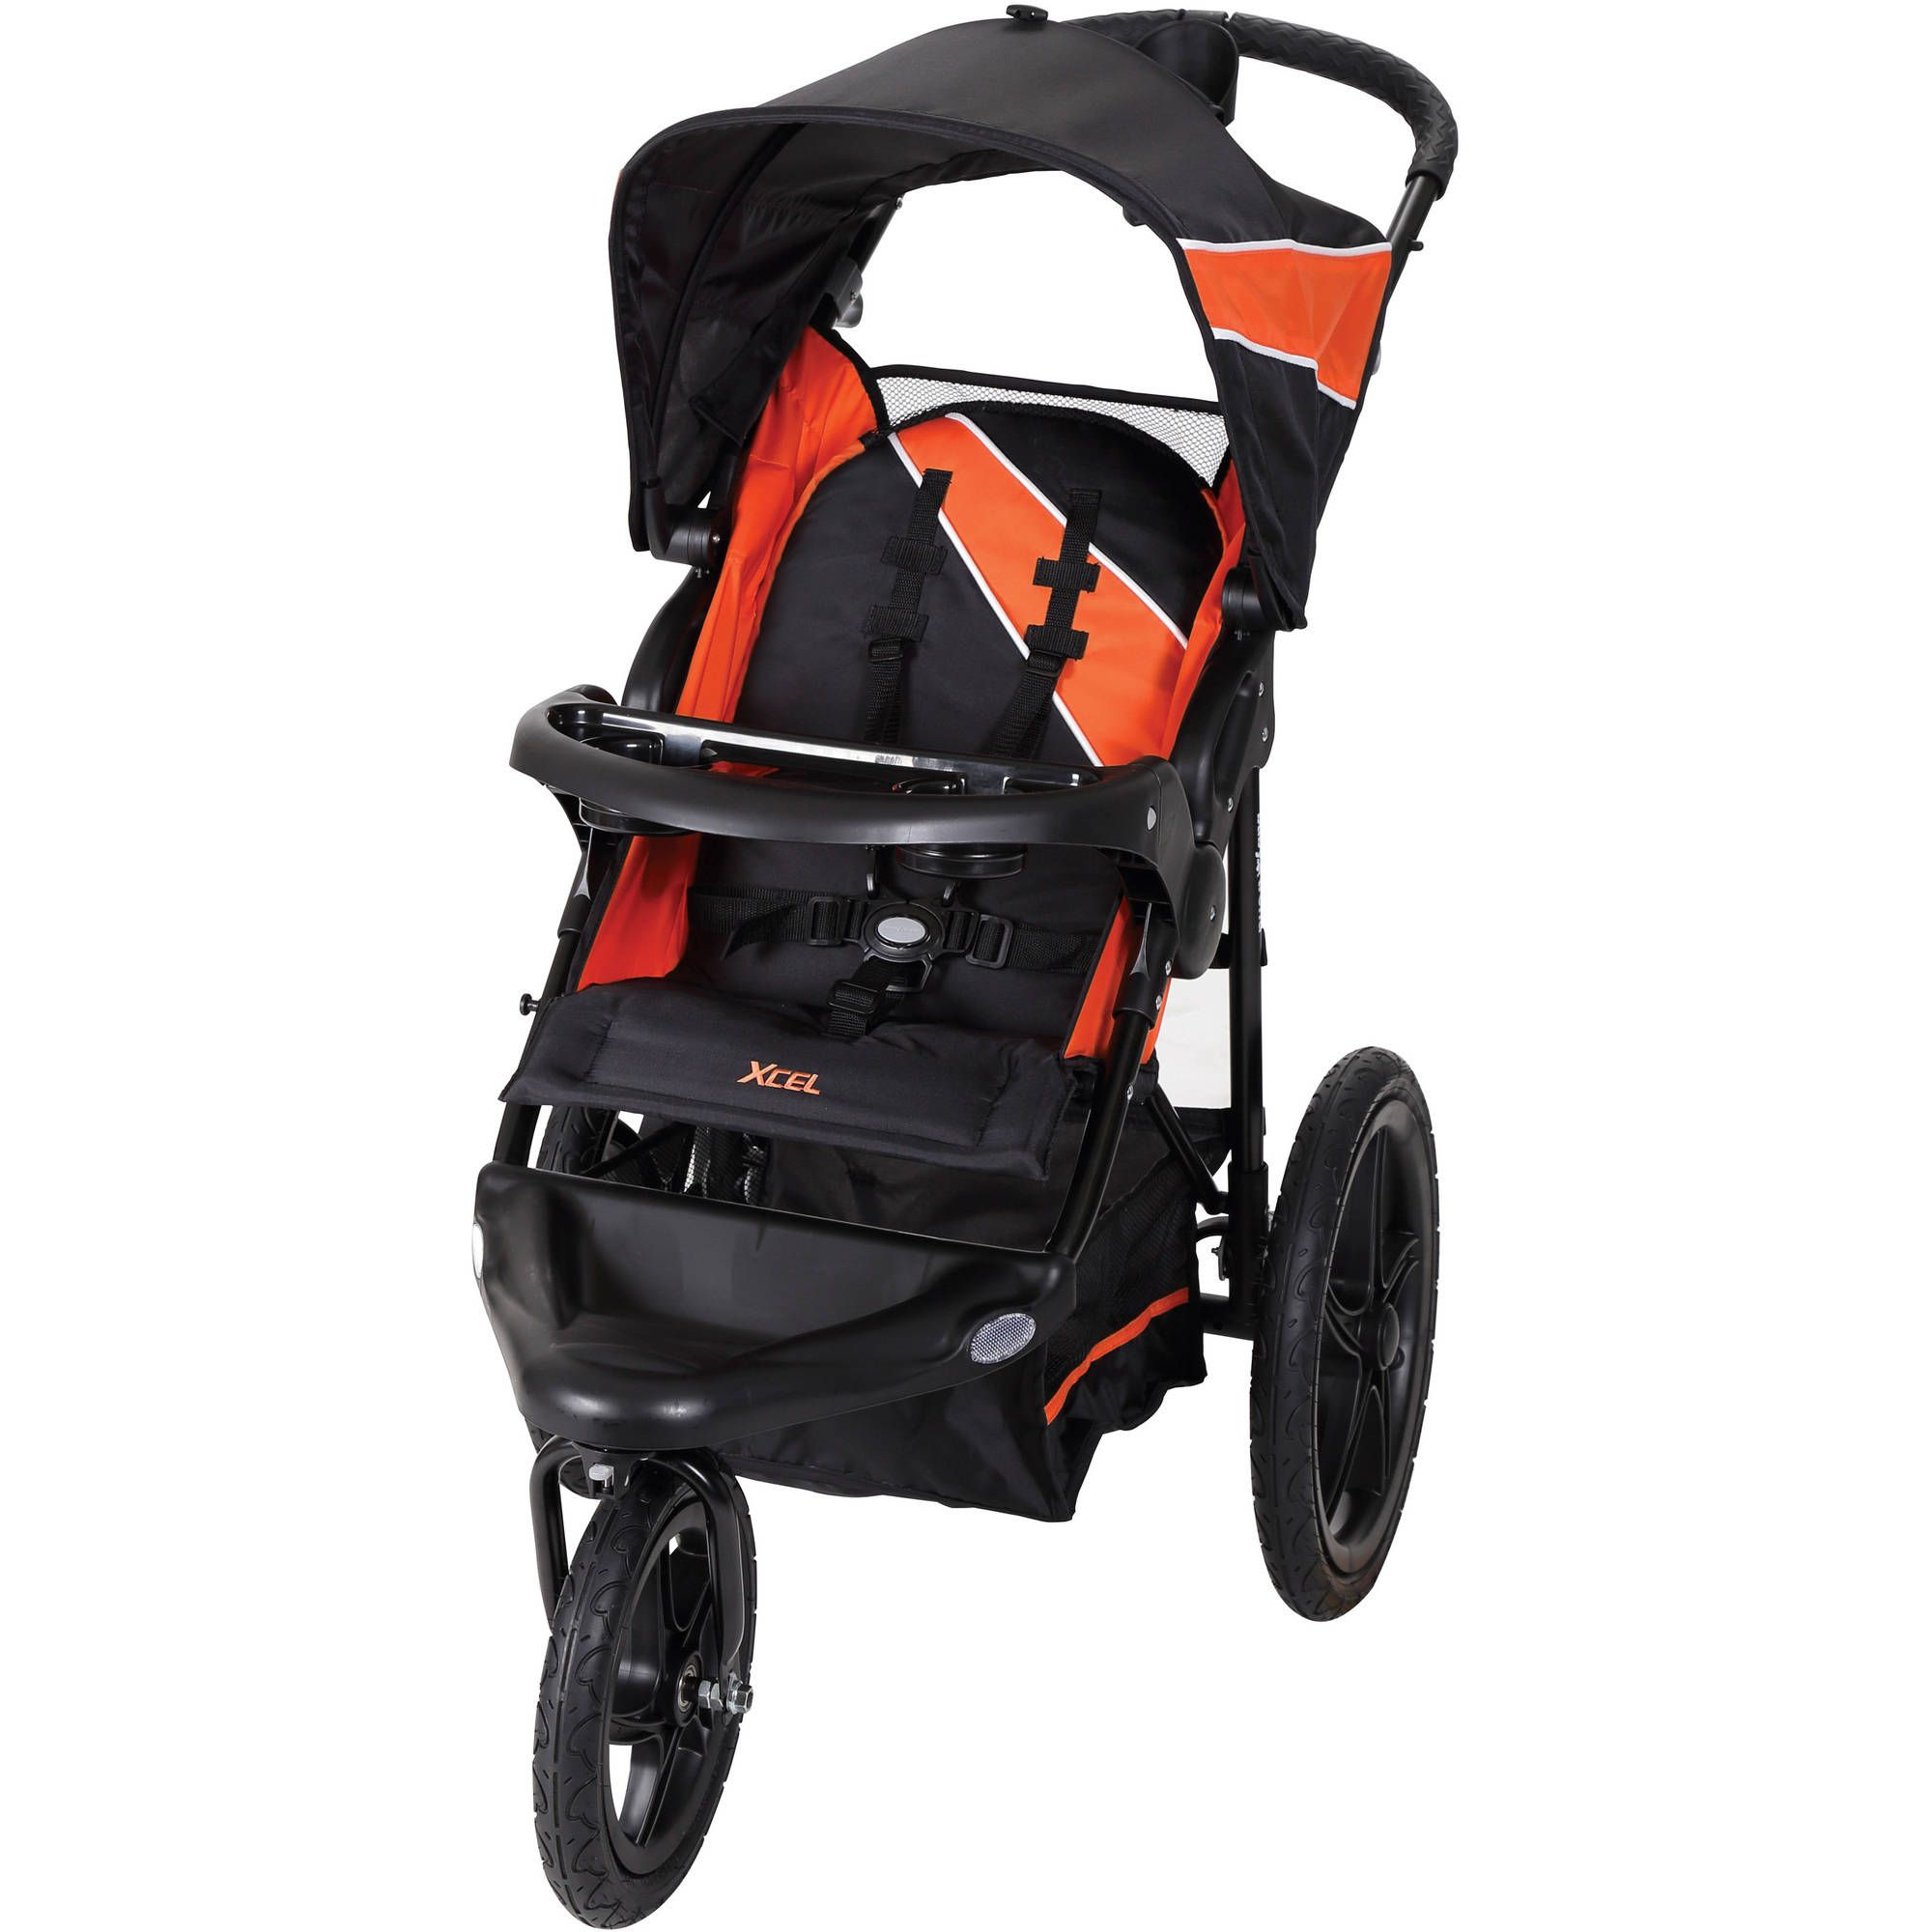 Clearance! Baby Trend XCEL Jogging Stroller, Tiger Lily